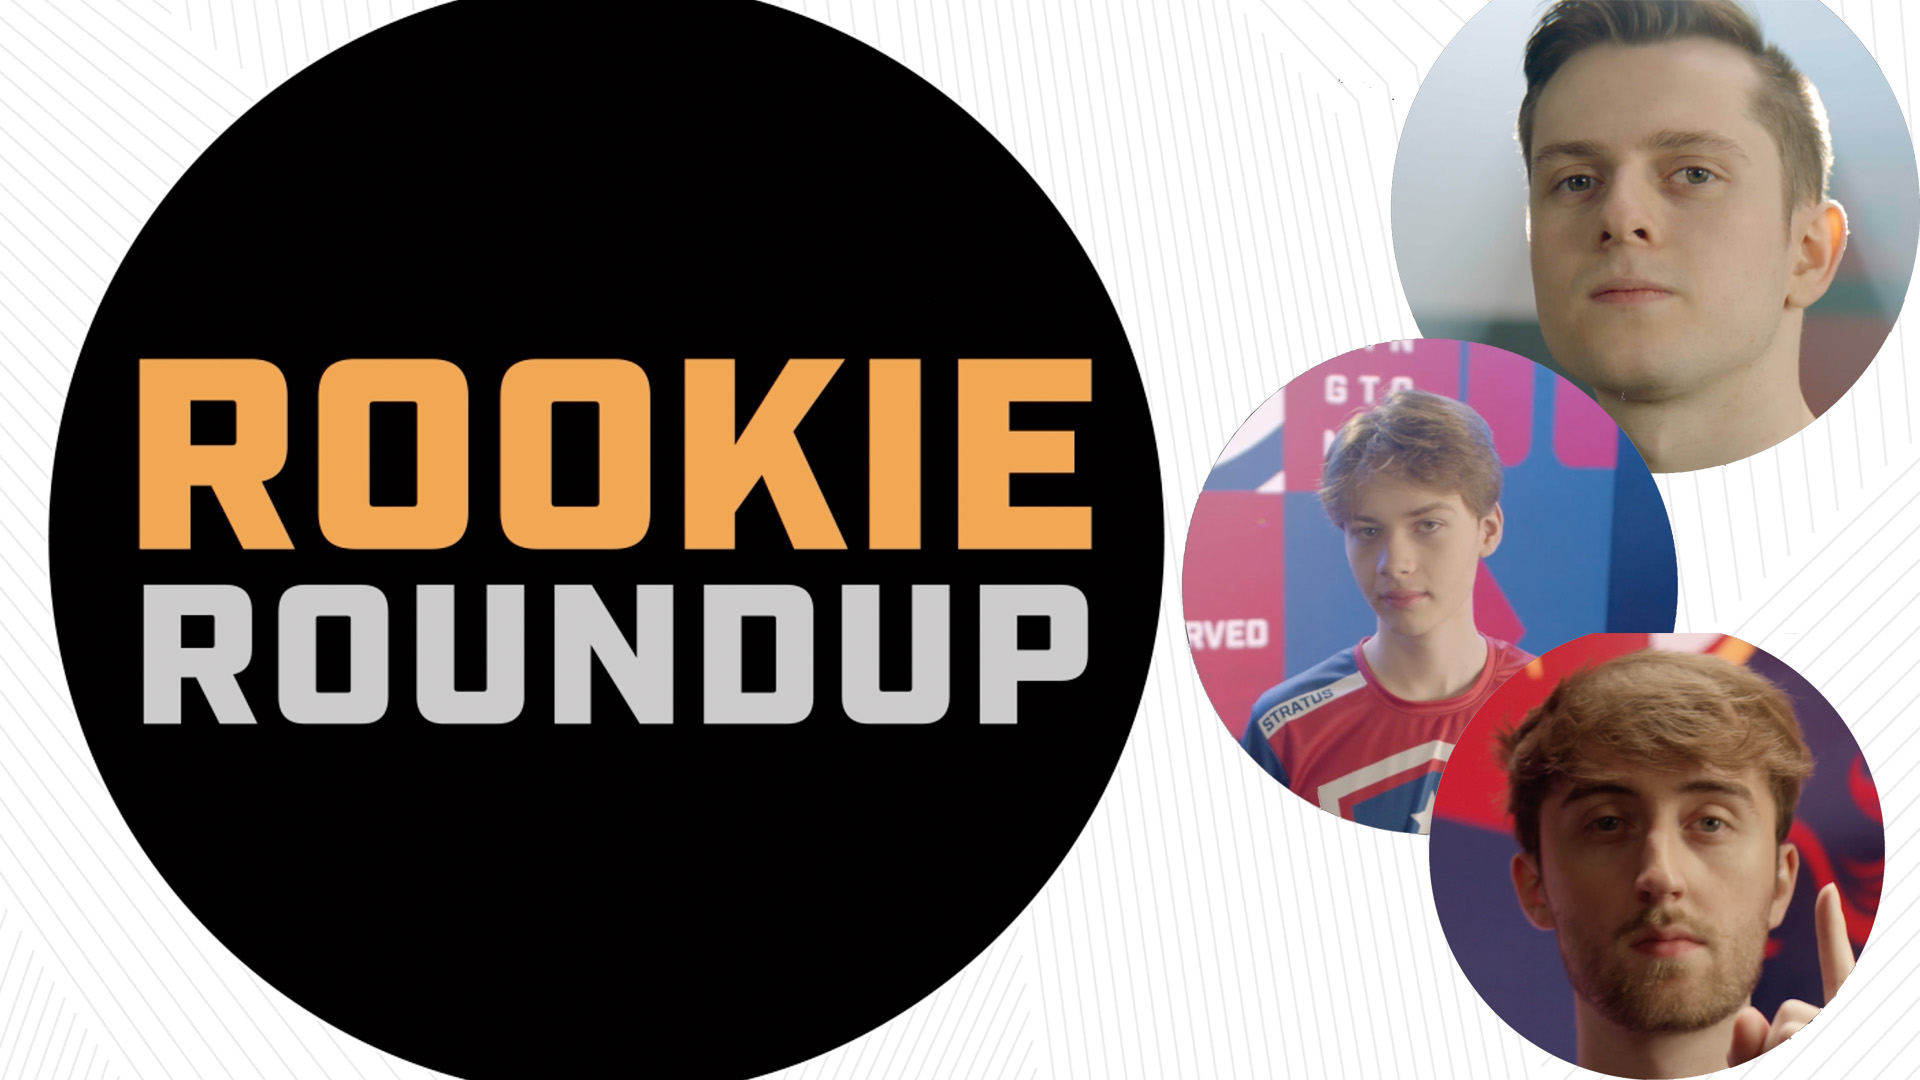 Rookie Roundup with Kruise, Dogman, and Stratus